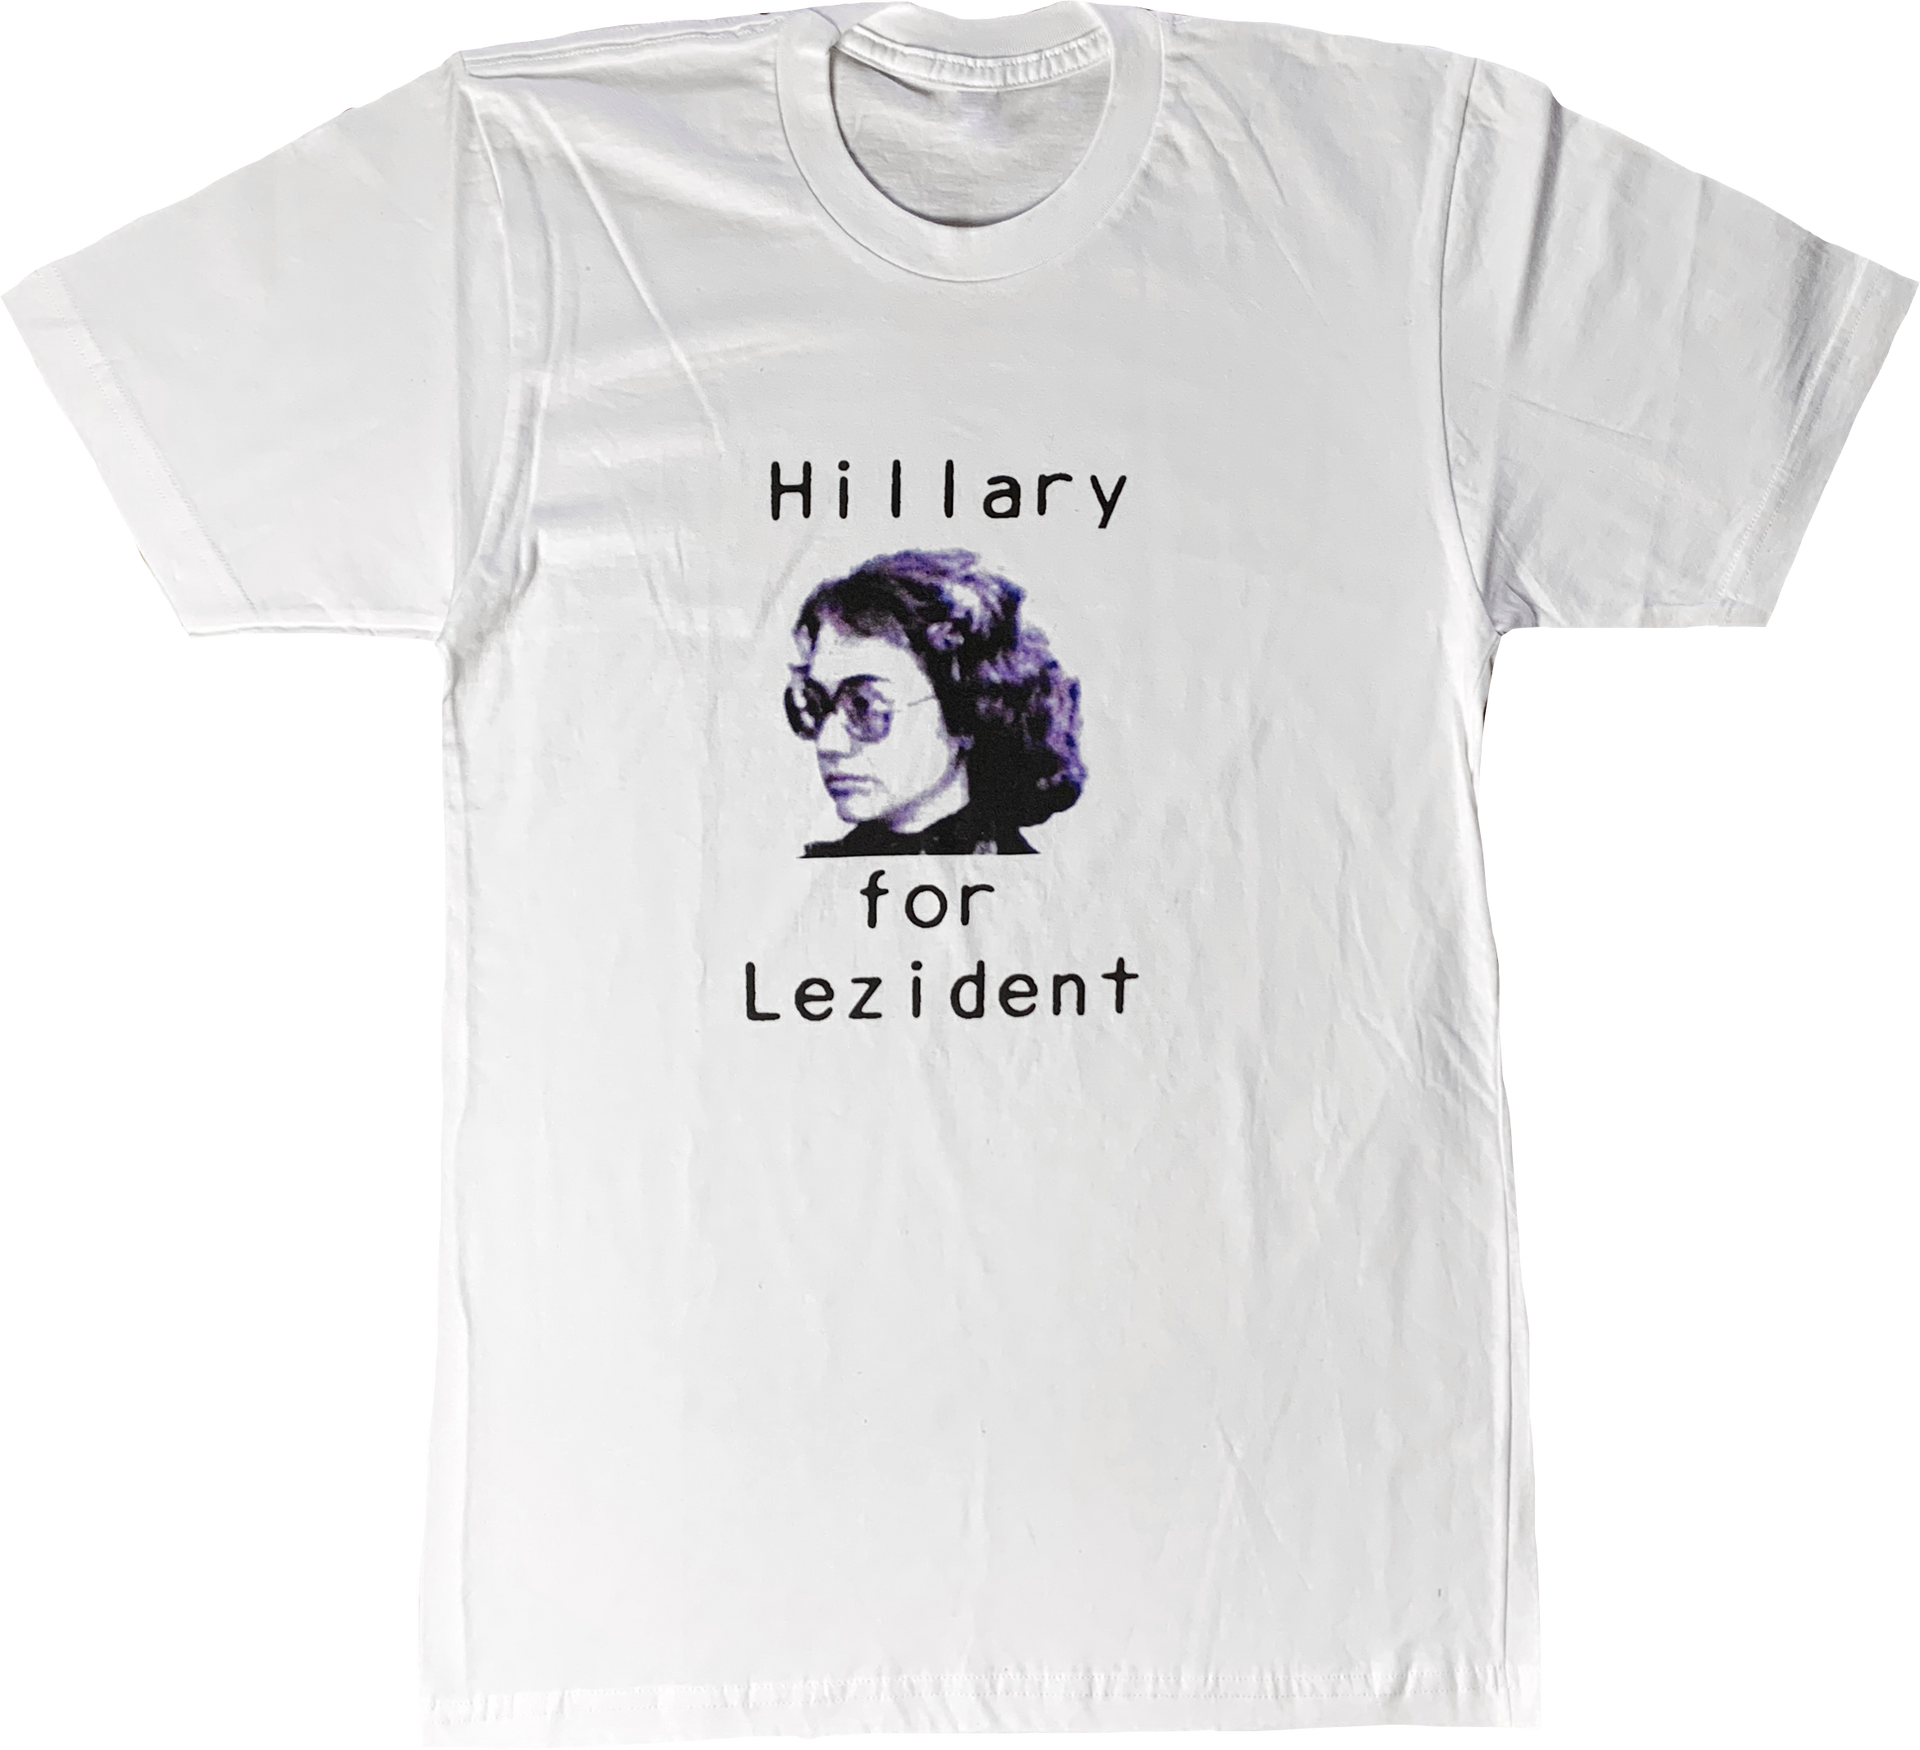 Hillary for Lezident